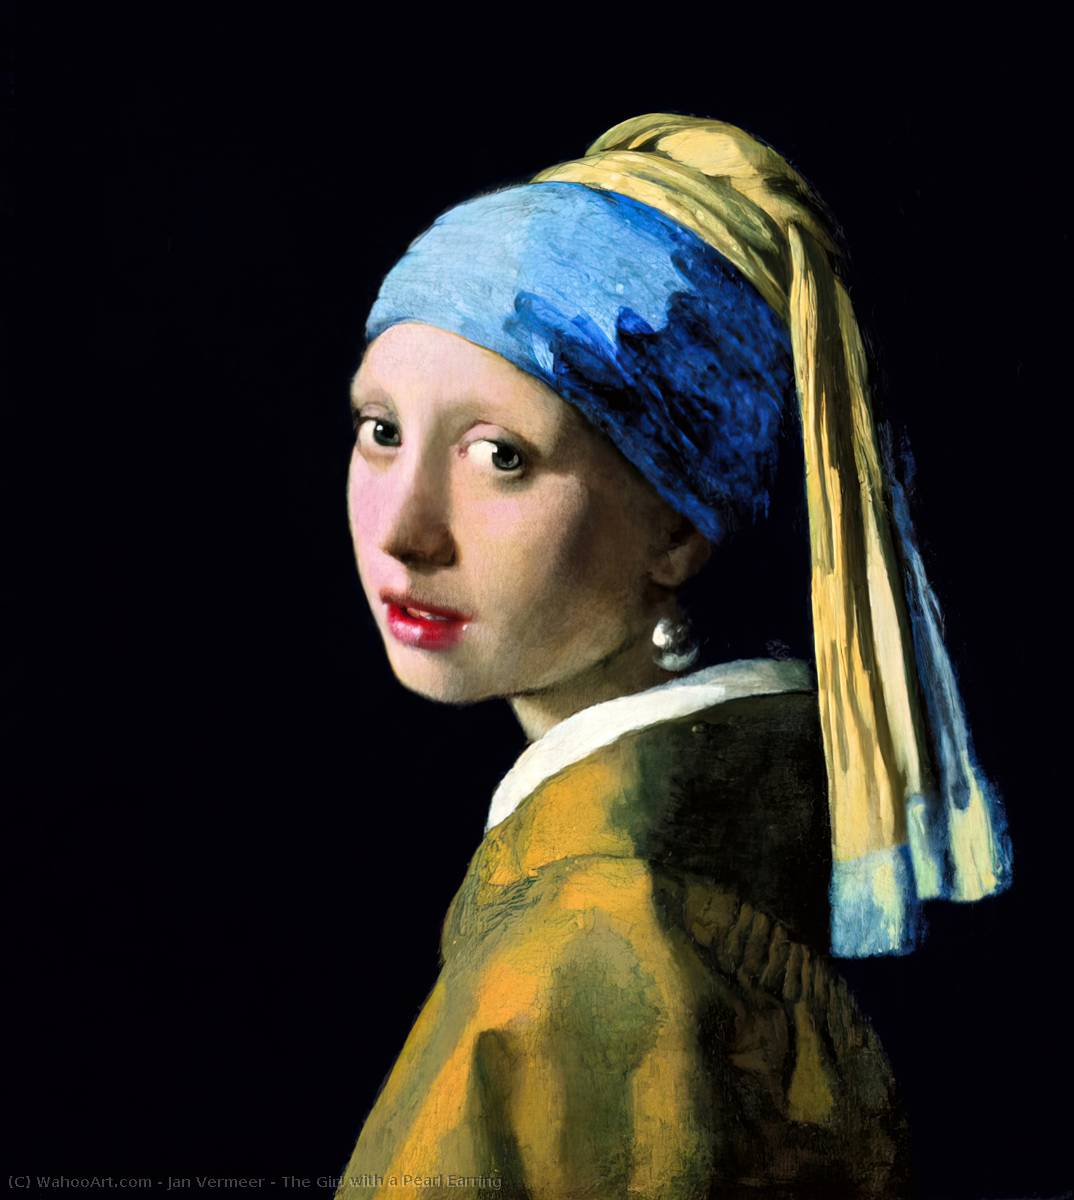 Buy Museum Art Reproductions | The Girl with a Pearl Earring by Jan Vermeer | Most-Famous-Paintings.com